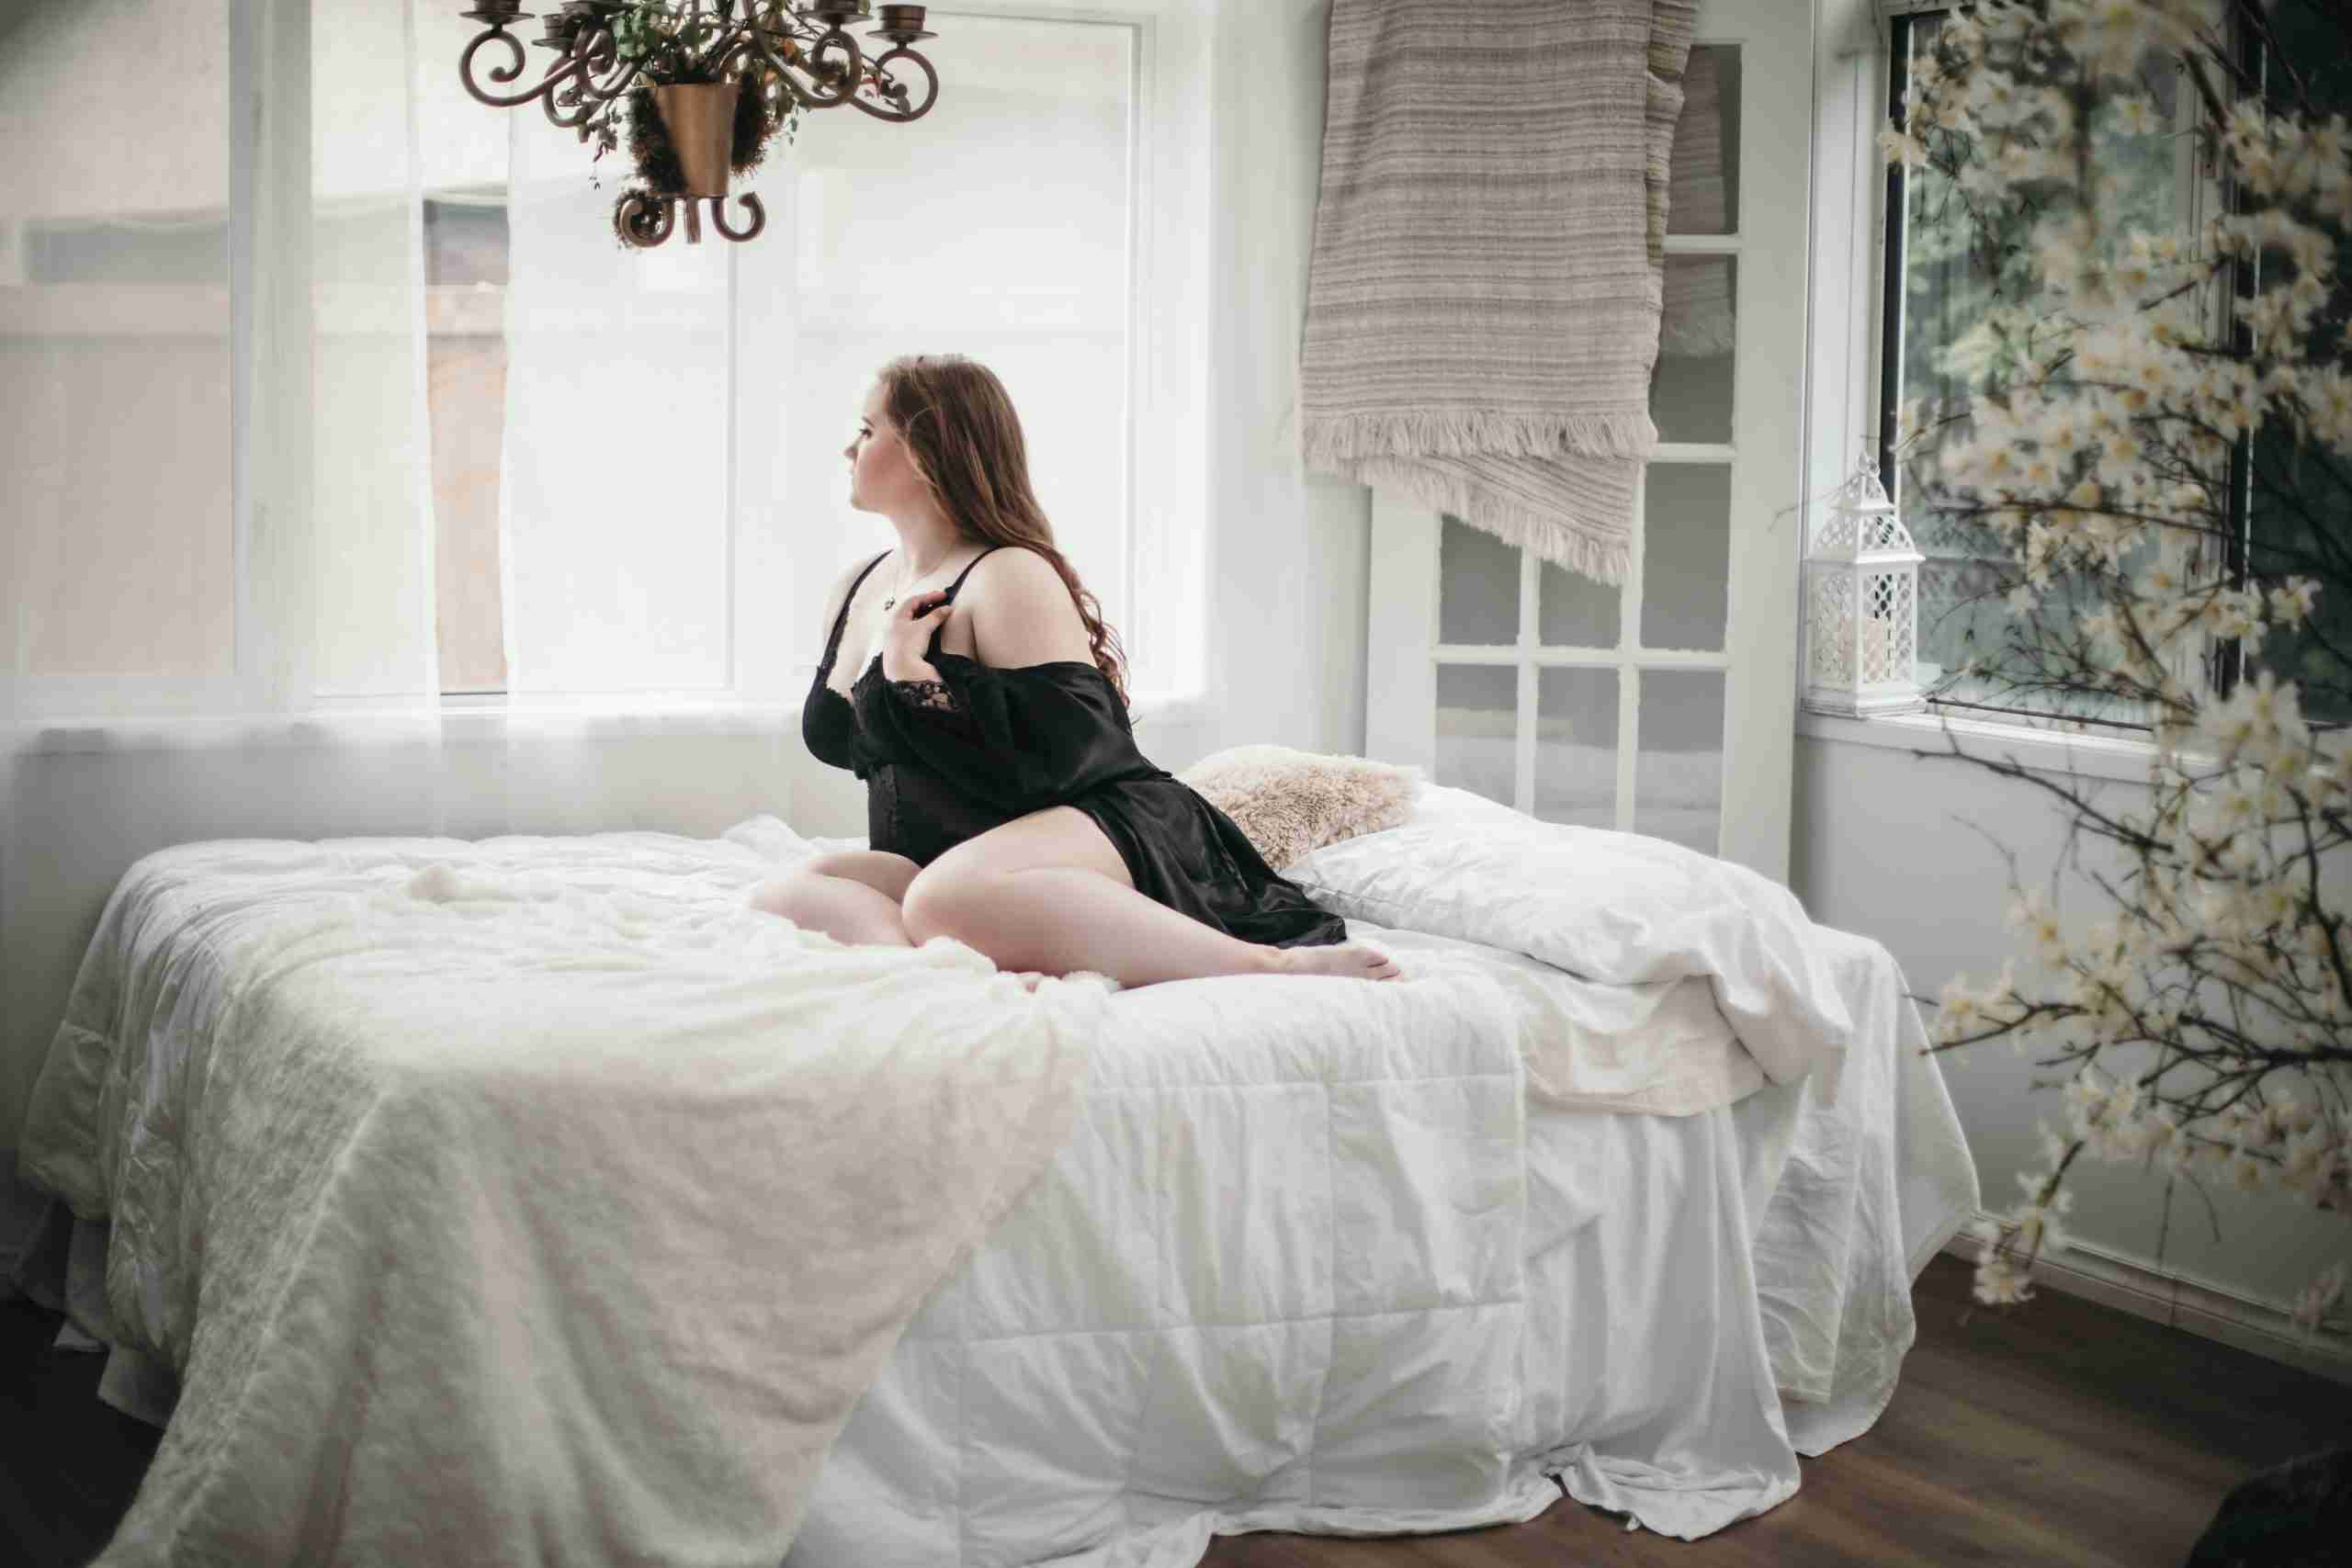 Spotlight on FEAR: Popular boudoir questions, answered